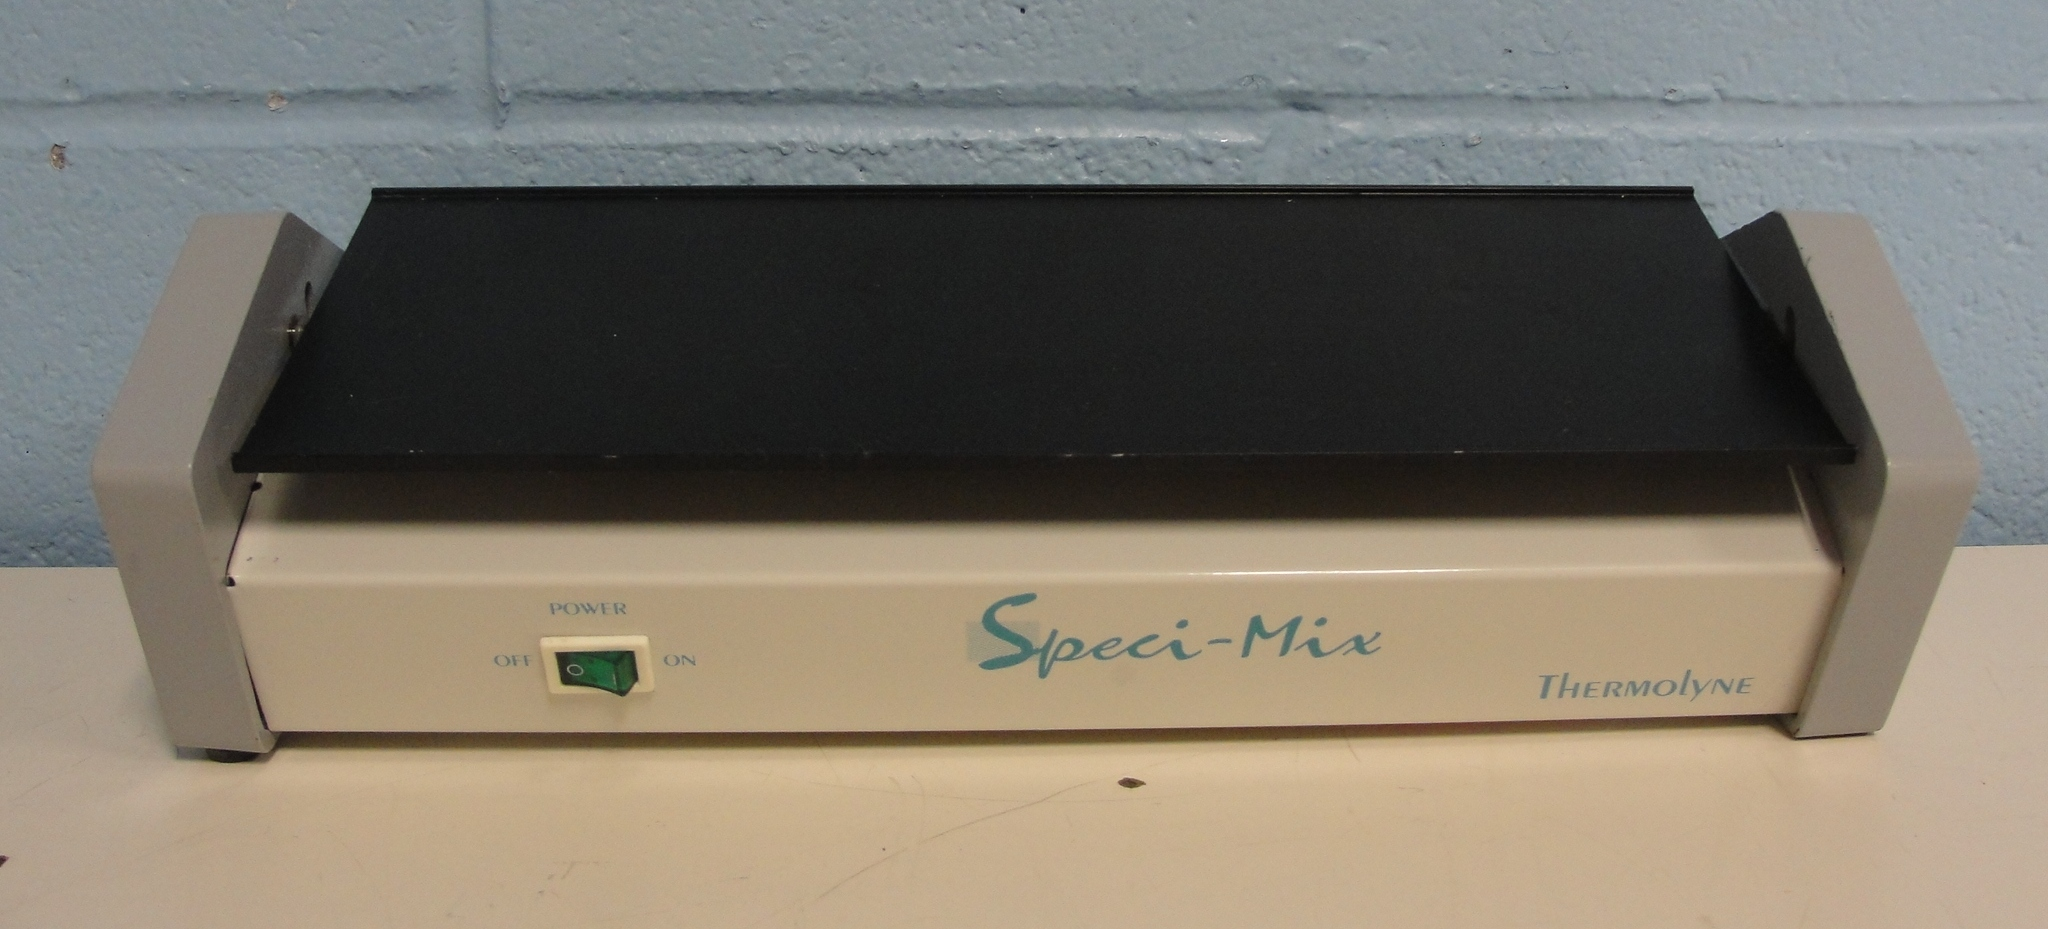 Barnstead/Thermolyne Speci-Mix Lab Test-Tube/Plate Mixer Image